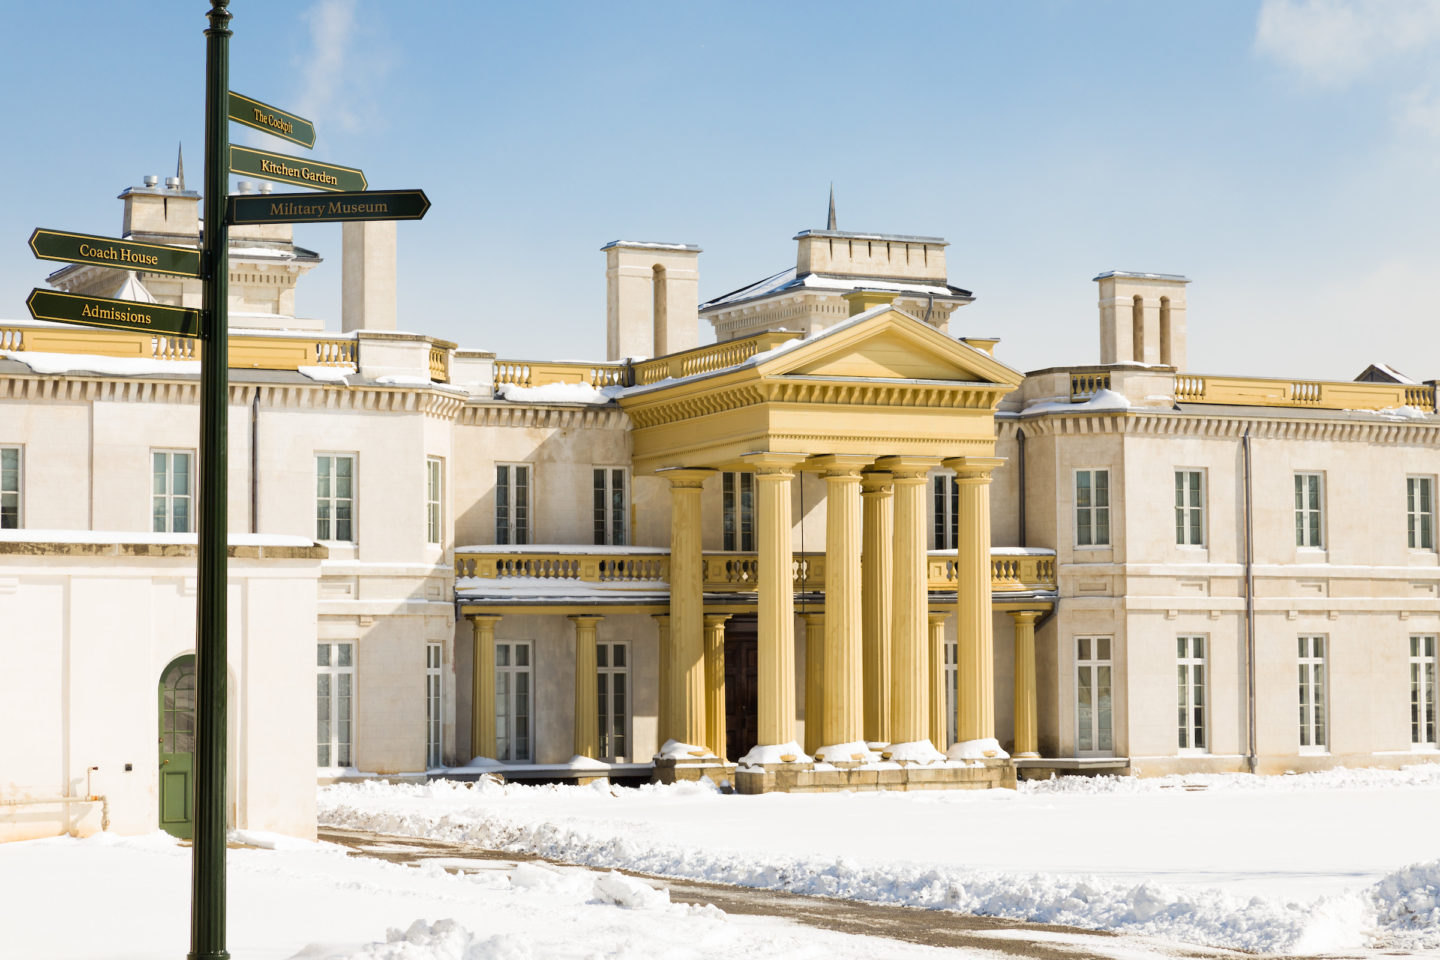 Dundurn Castle – National Historic Site